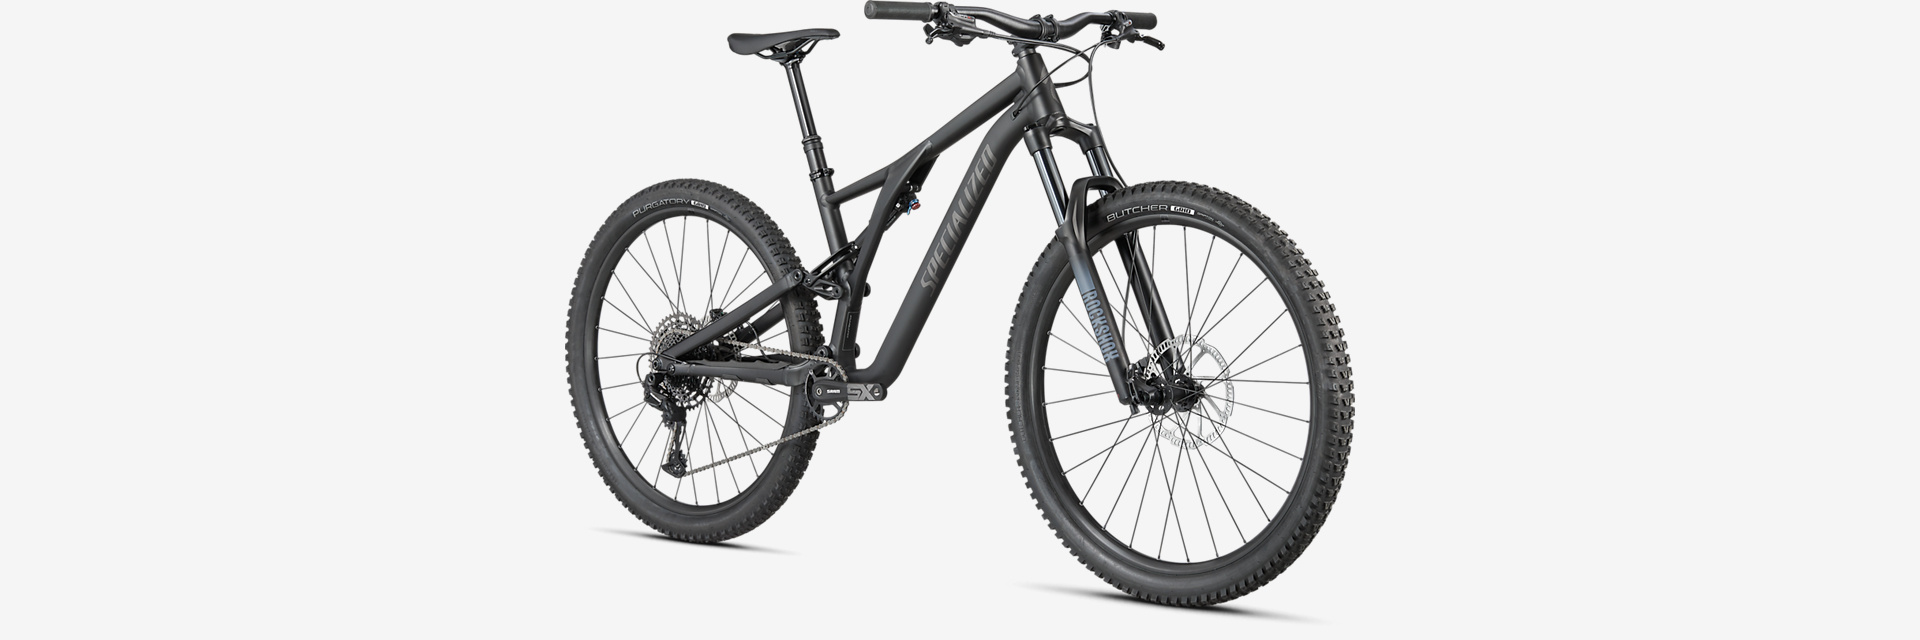 21 Stumpjumper Alloy, Black/Smoke S4